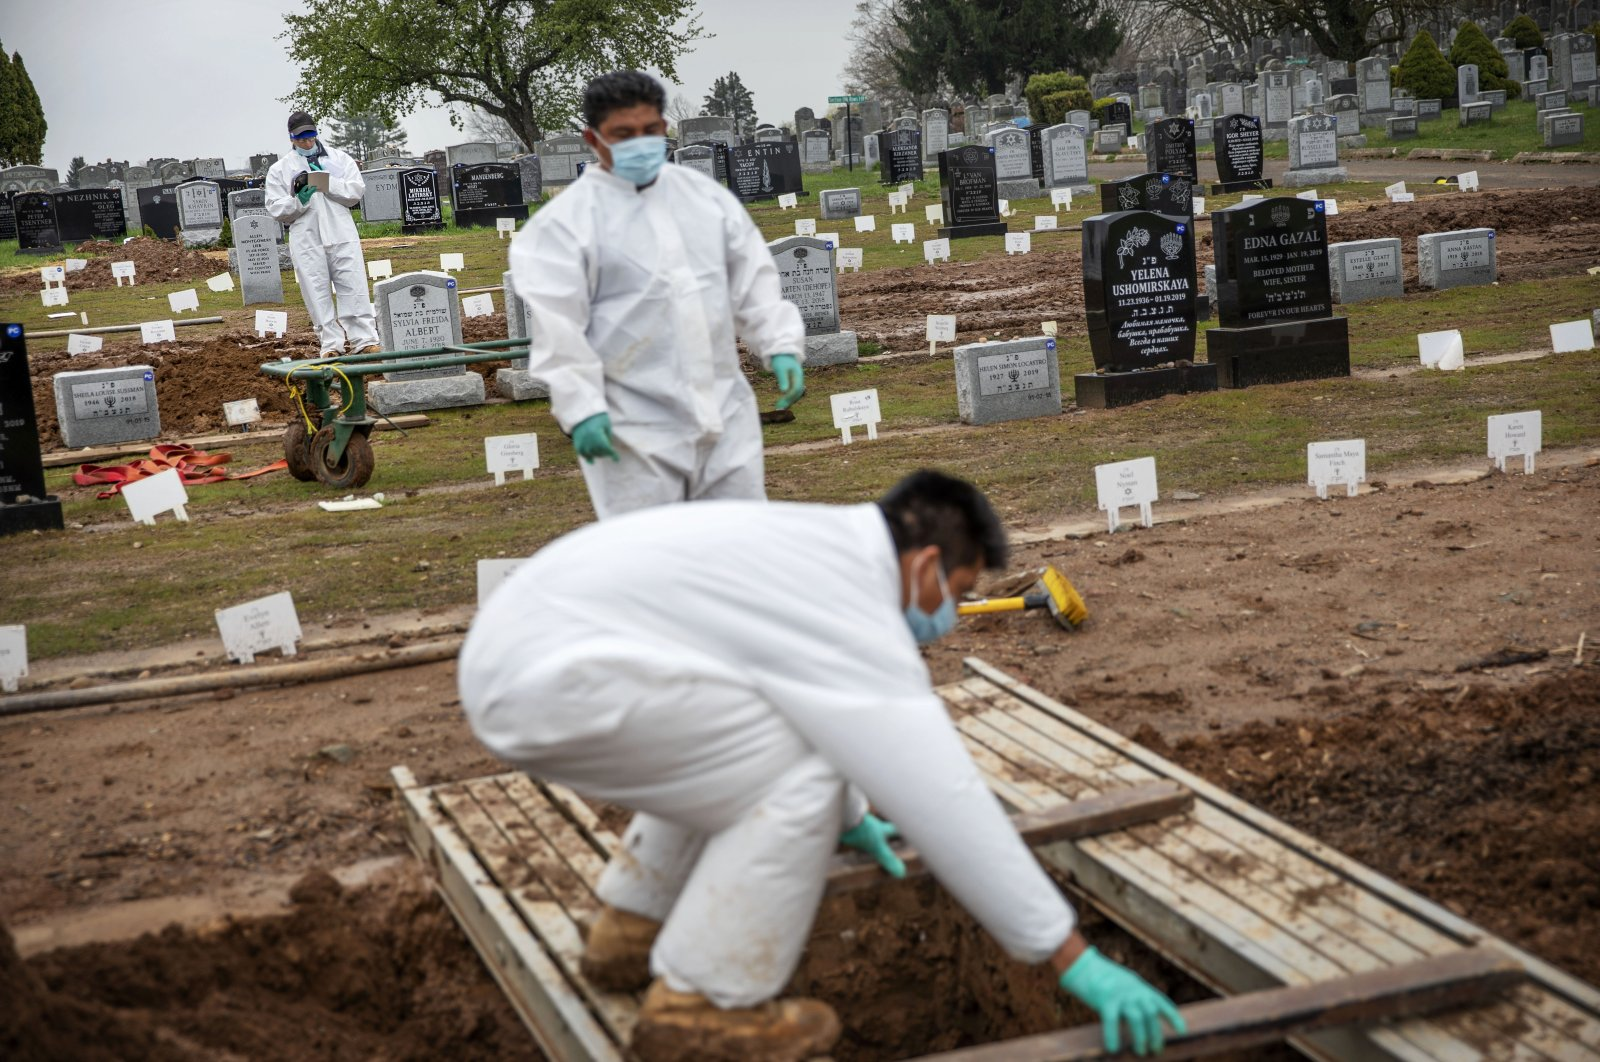 A rabbi (in the background) finishes a prayer during a burial service as gravediggers prepare a plot for the next burial at a cemetery in Staten Island, New York, April 8, 2020. (AP Photo)